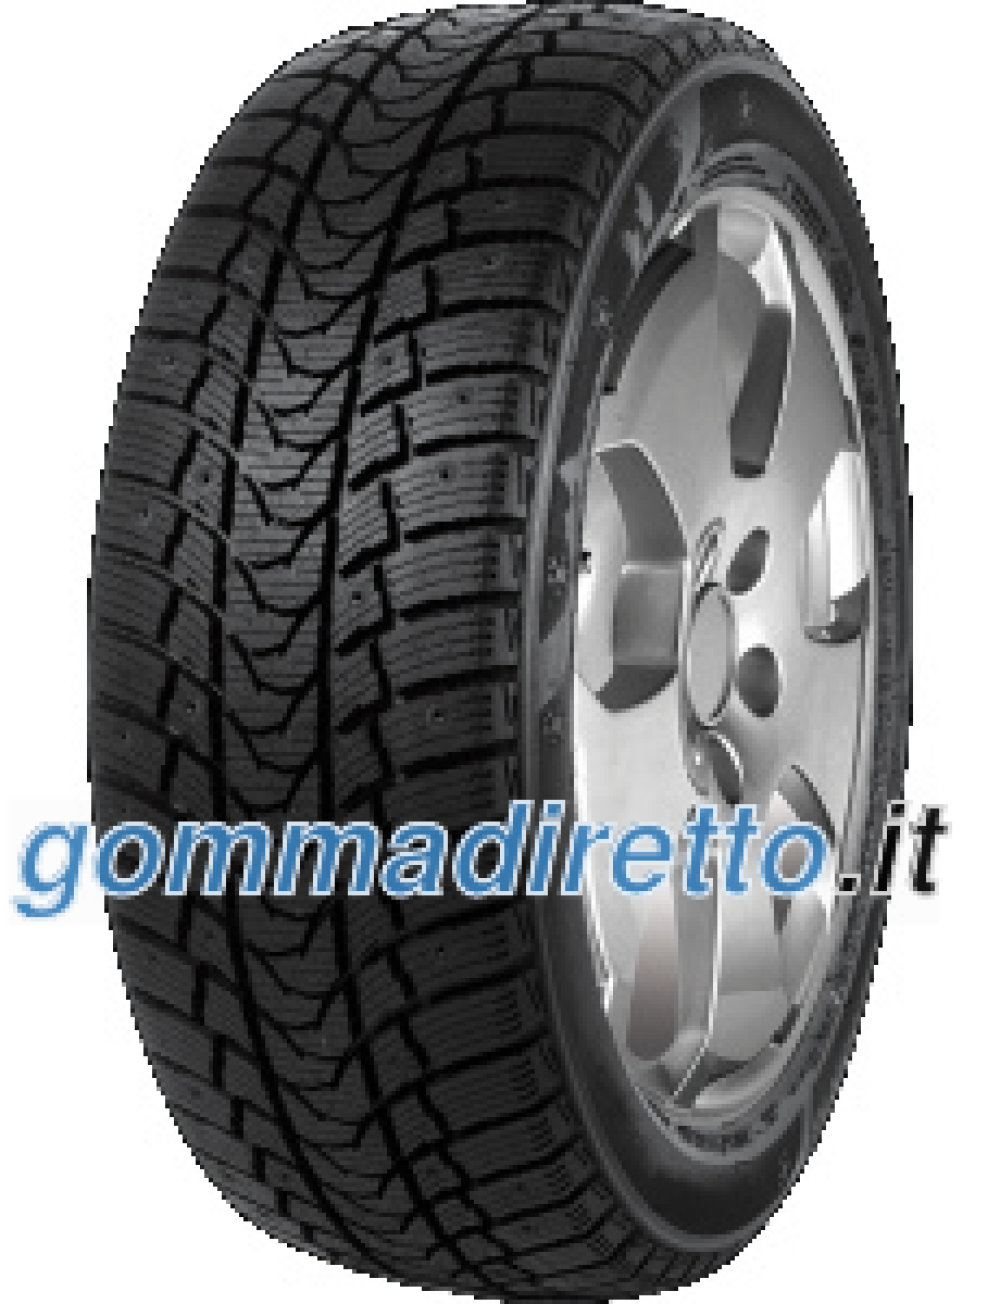 Image of Imperial Eco North ( 175/65 R15 84T, pneumatico chiodato )